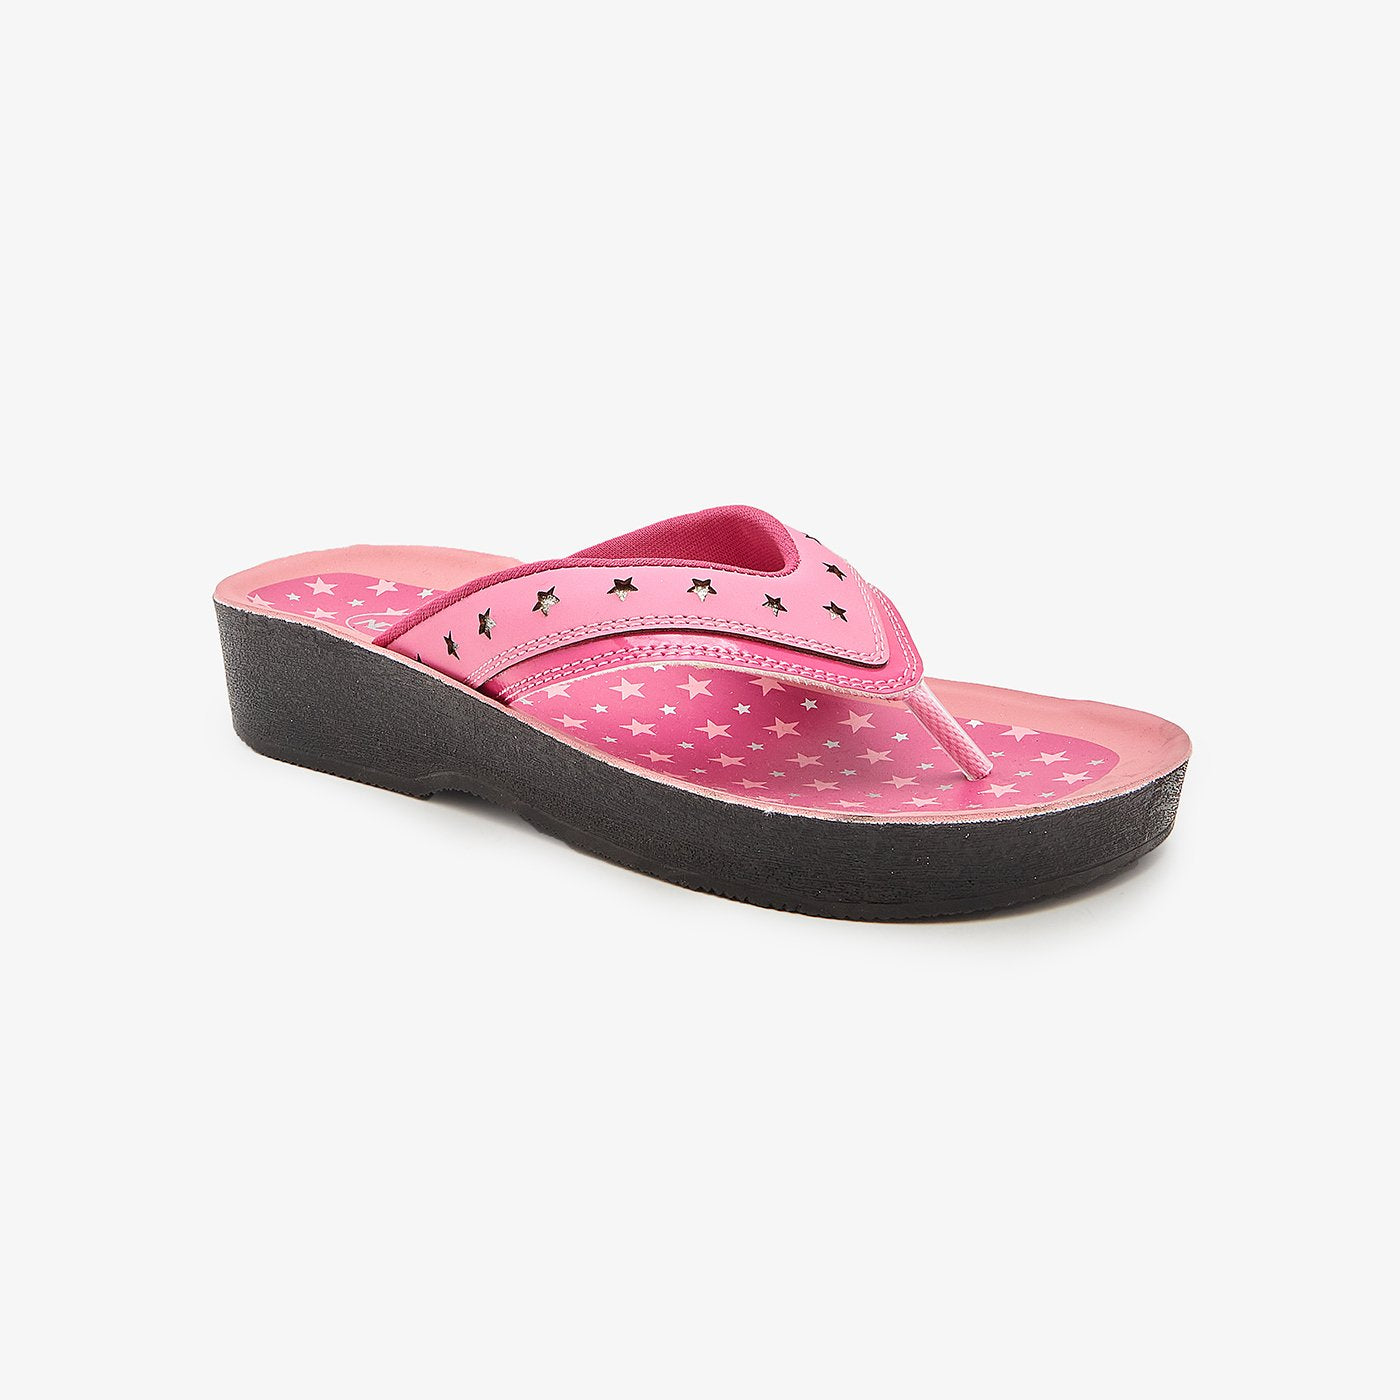 Comfy Girls Cross-Strap Chappals